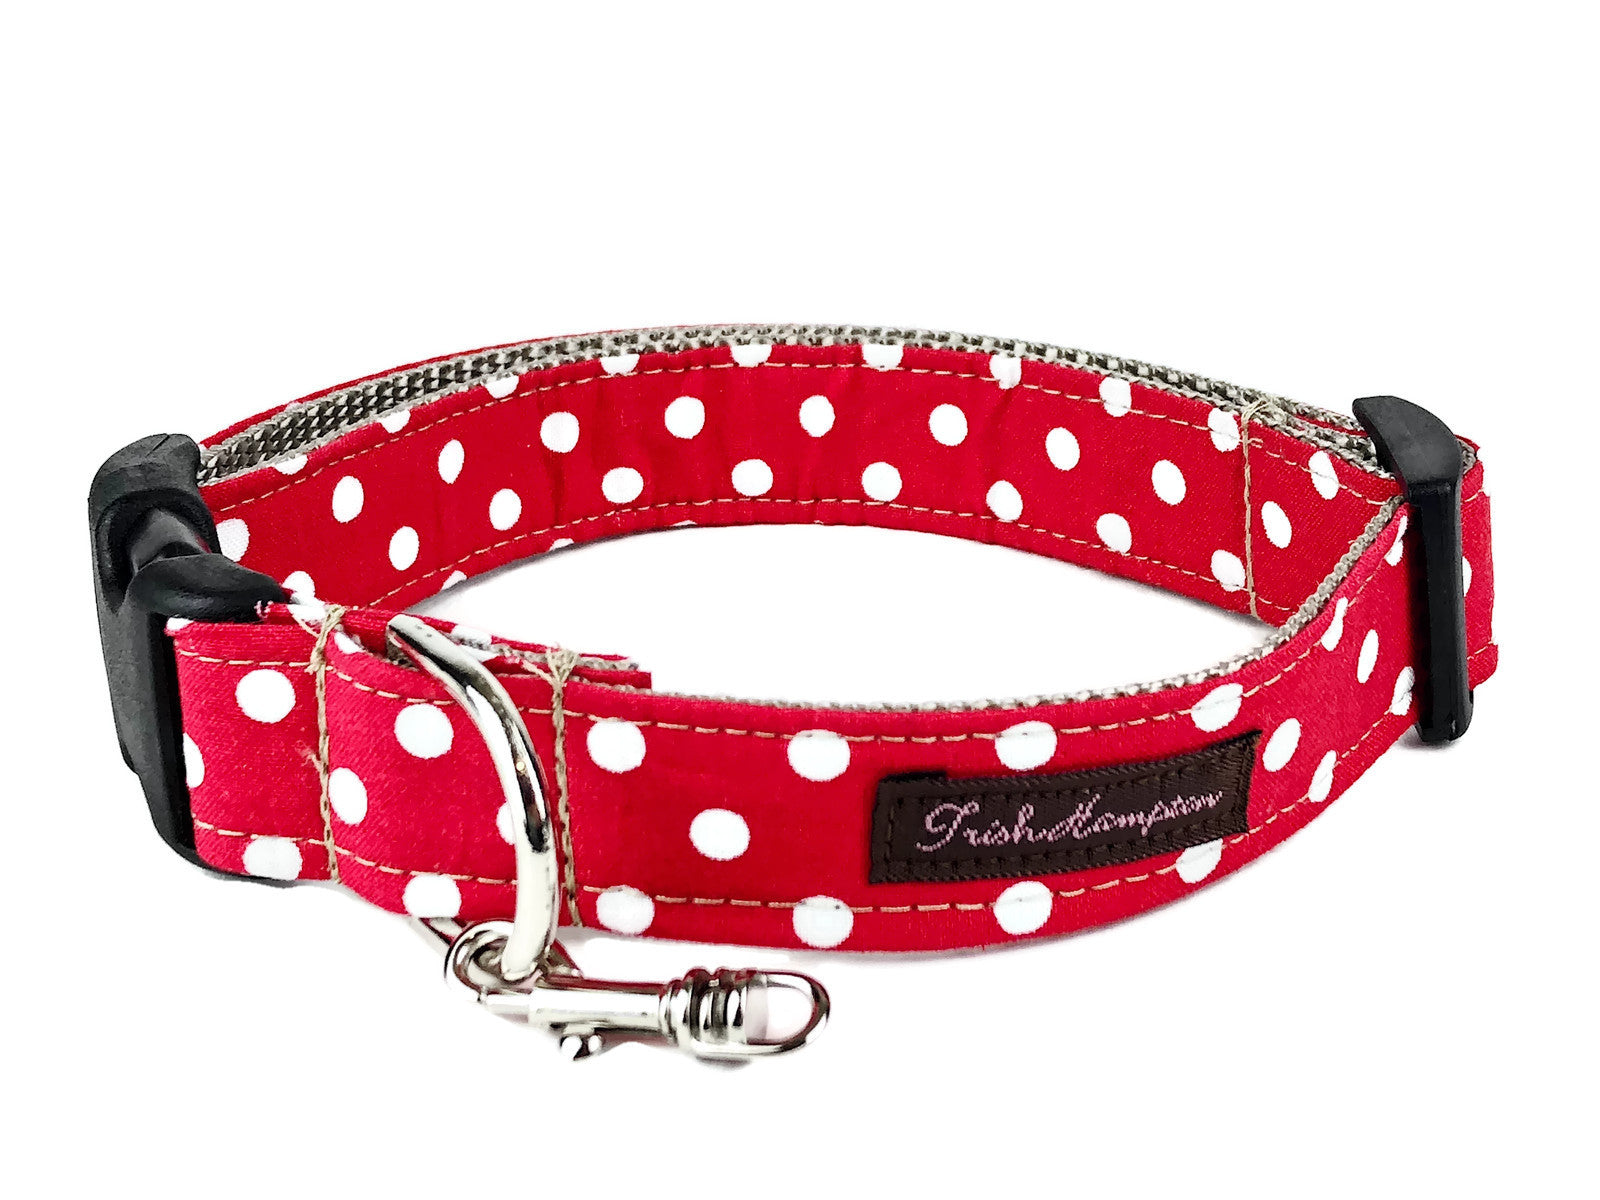 Red / White Polka Dot Dog Collar - 508